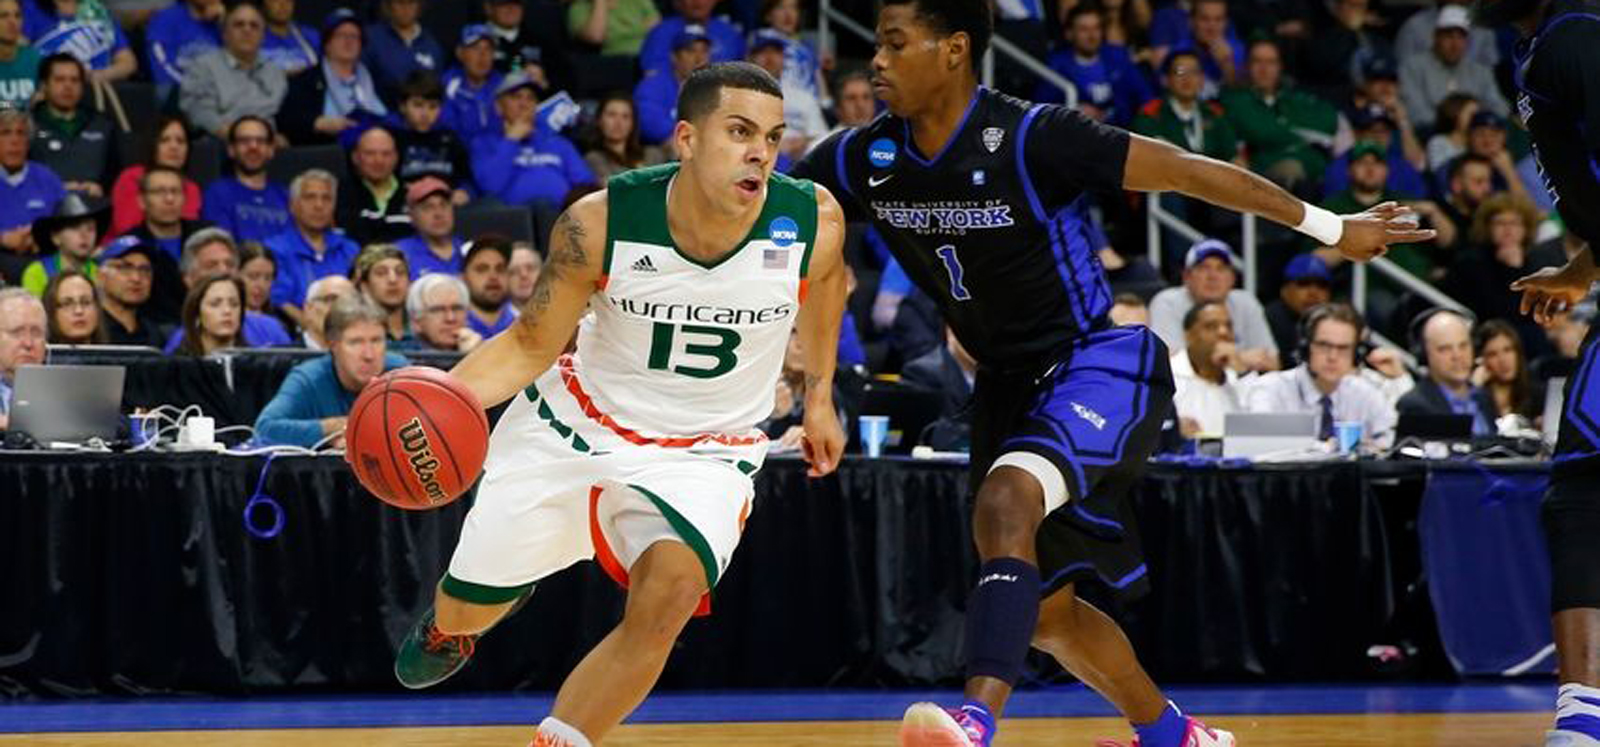 miami hurricanes basketball the u buffalo bulls march madness ncaa tournament